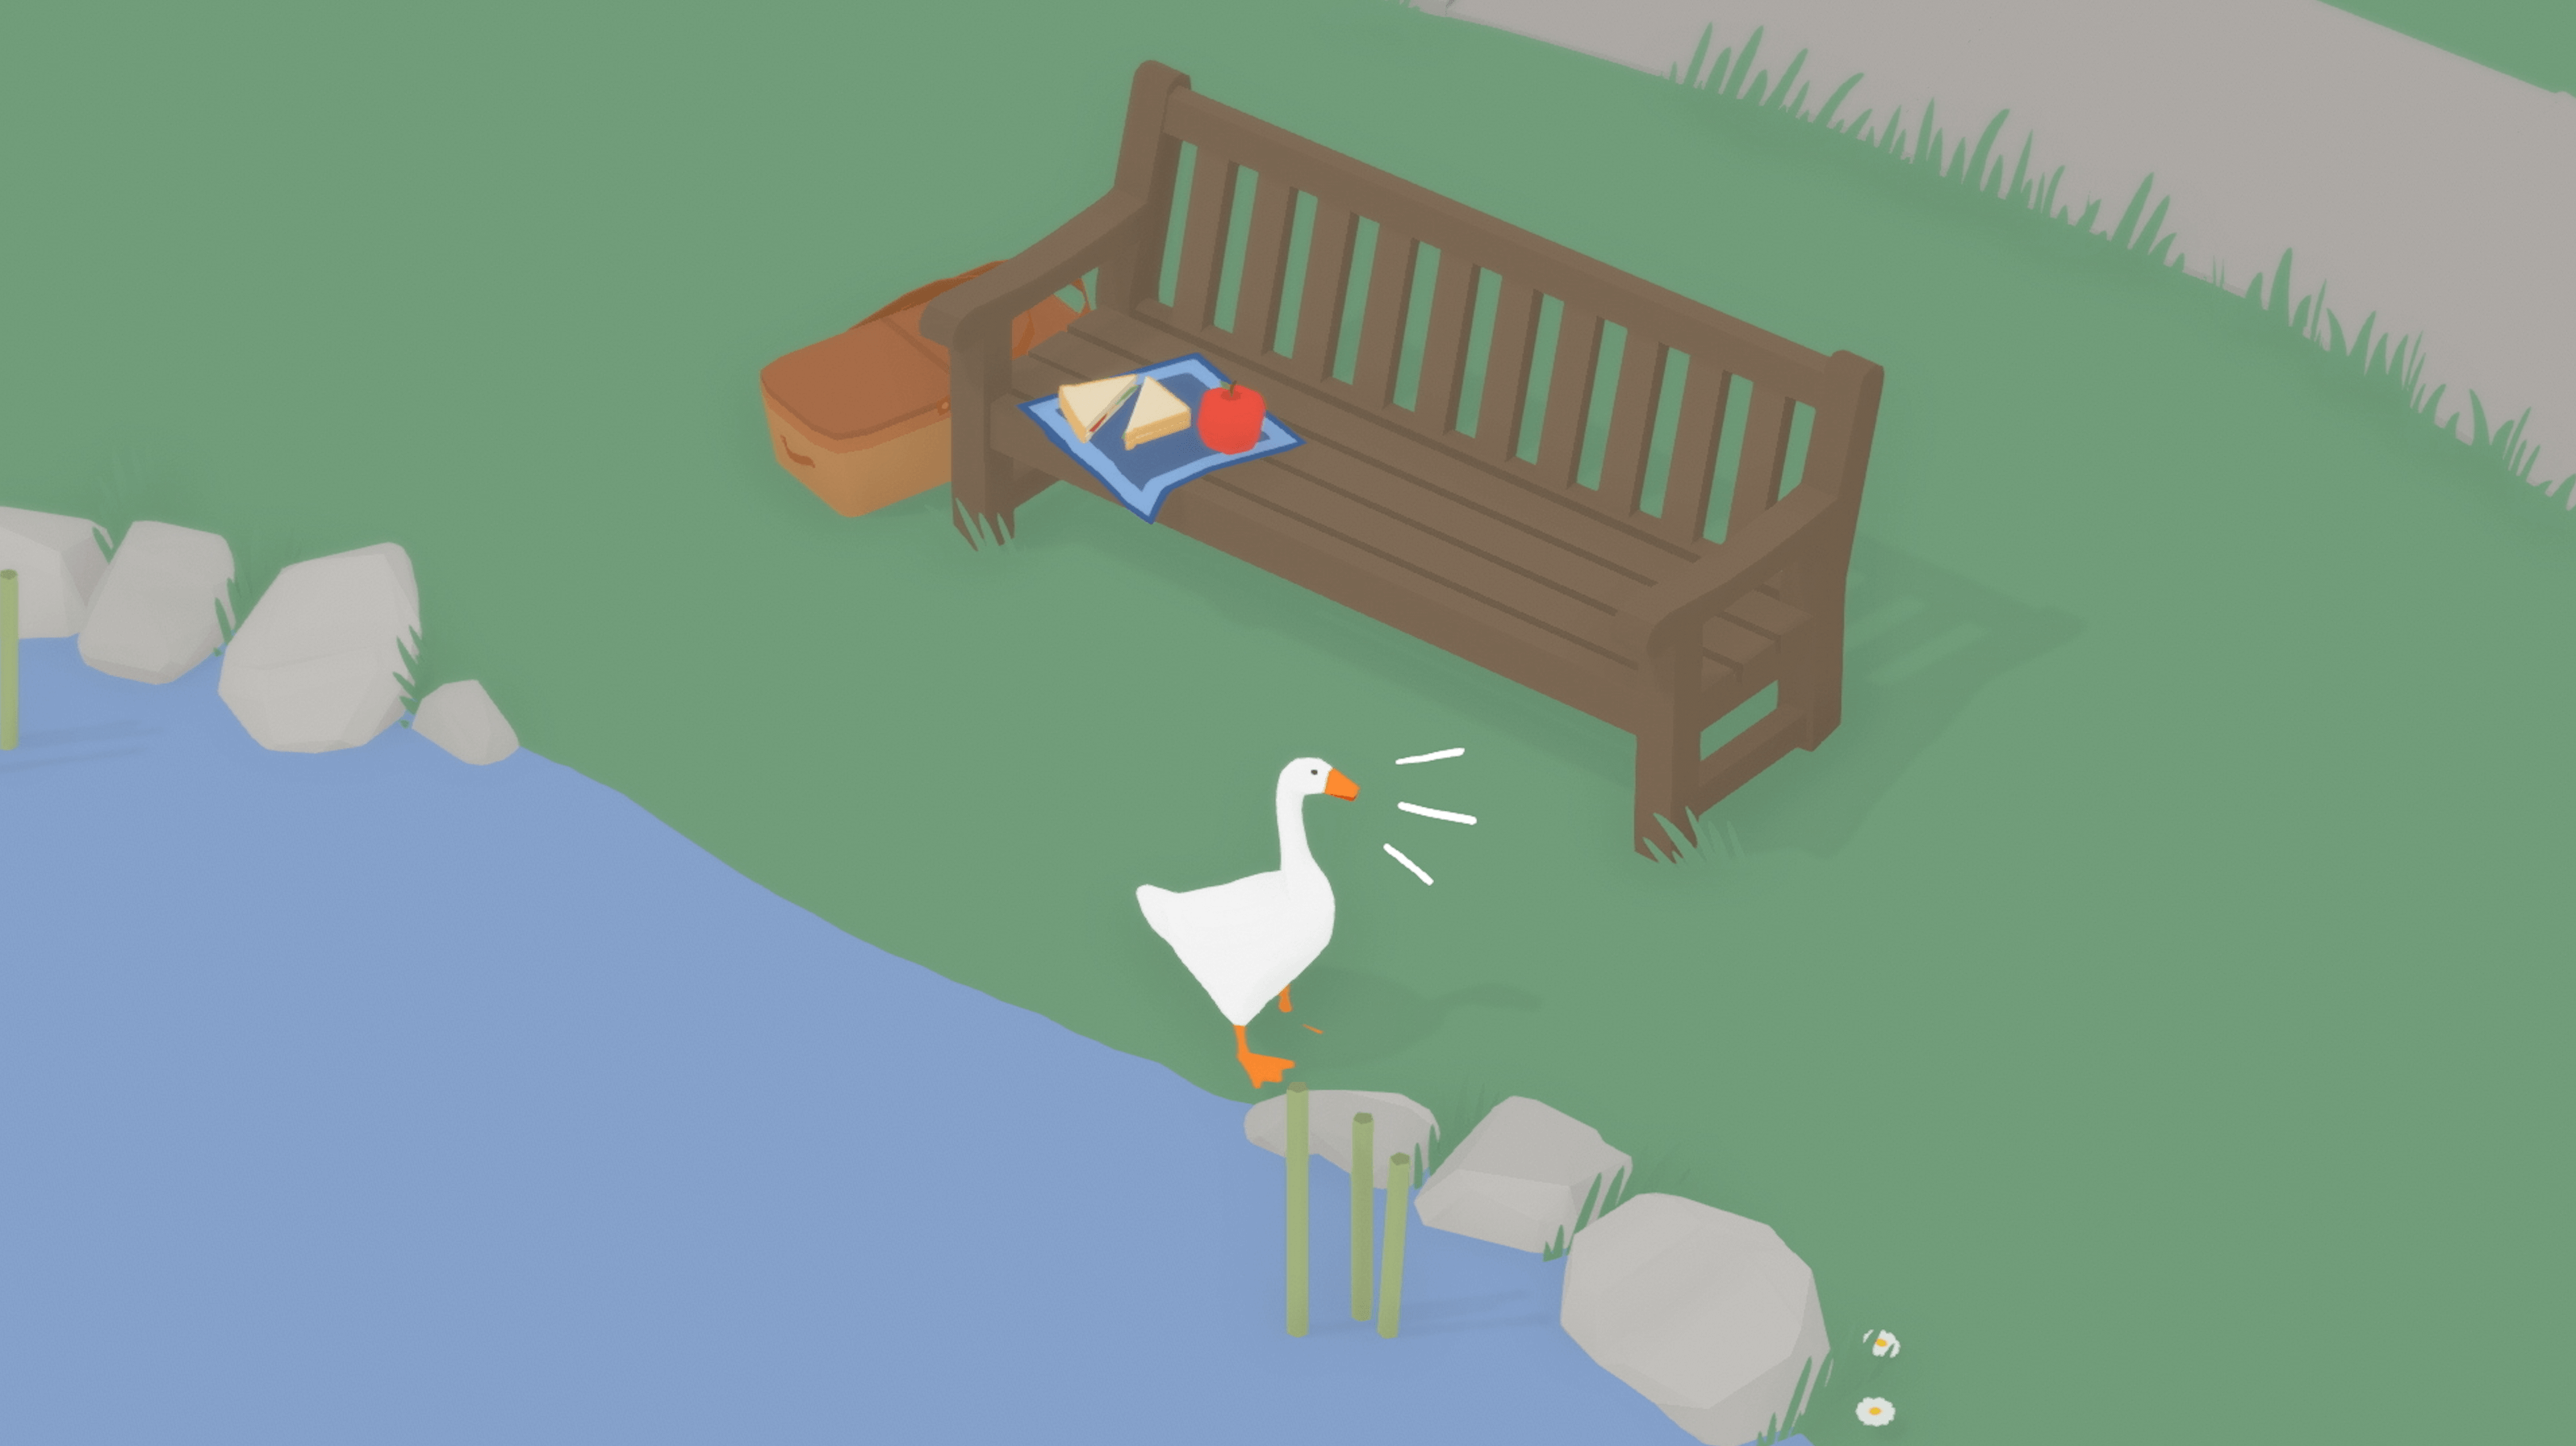 untitled goose game screenshot wide wallpaper 68474